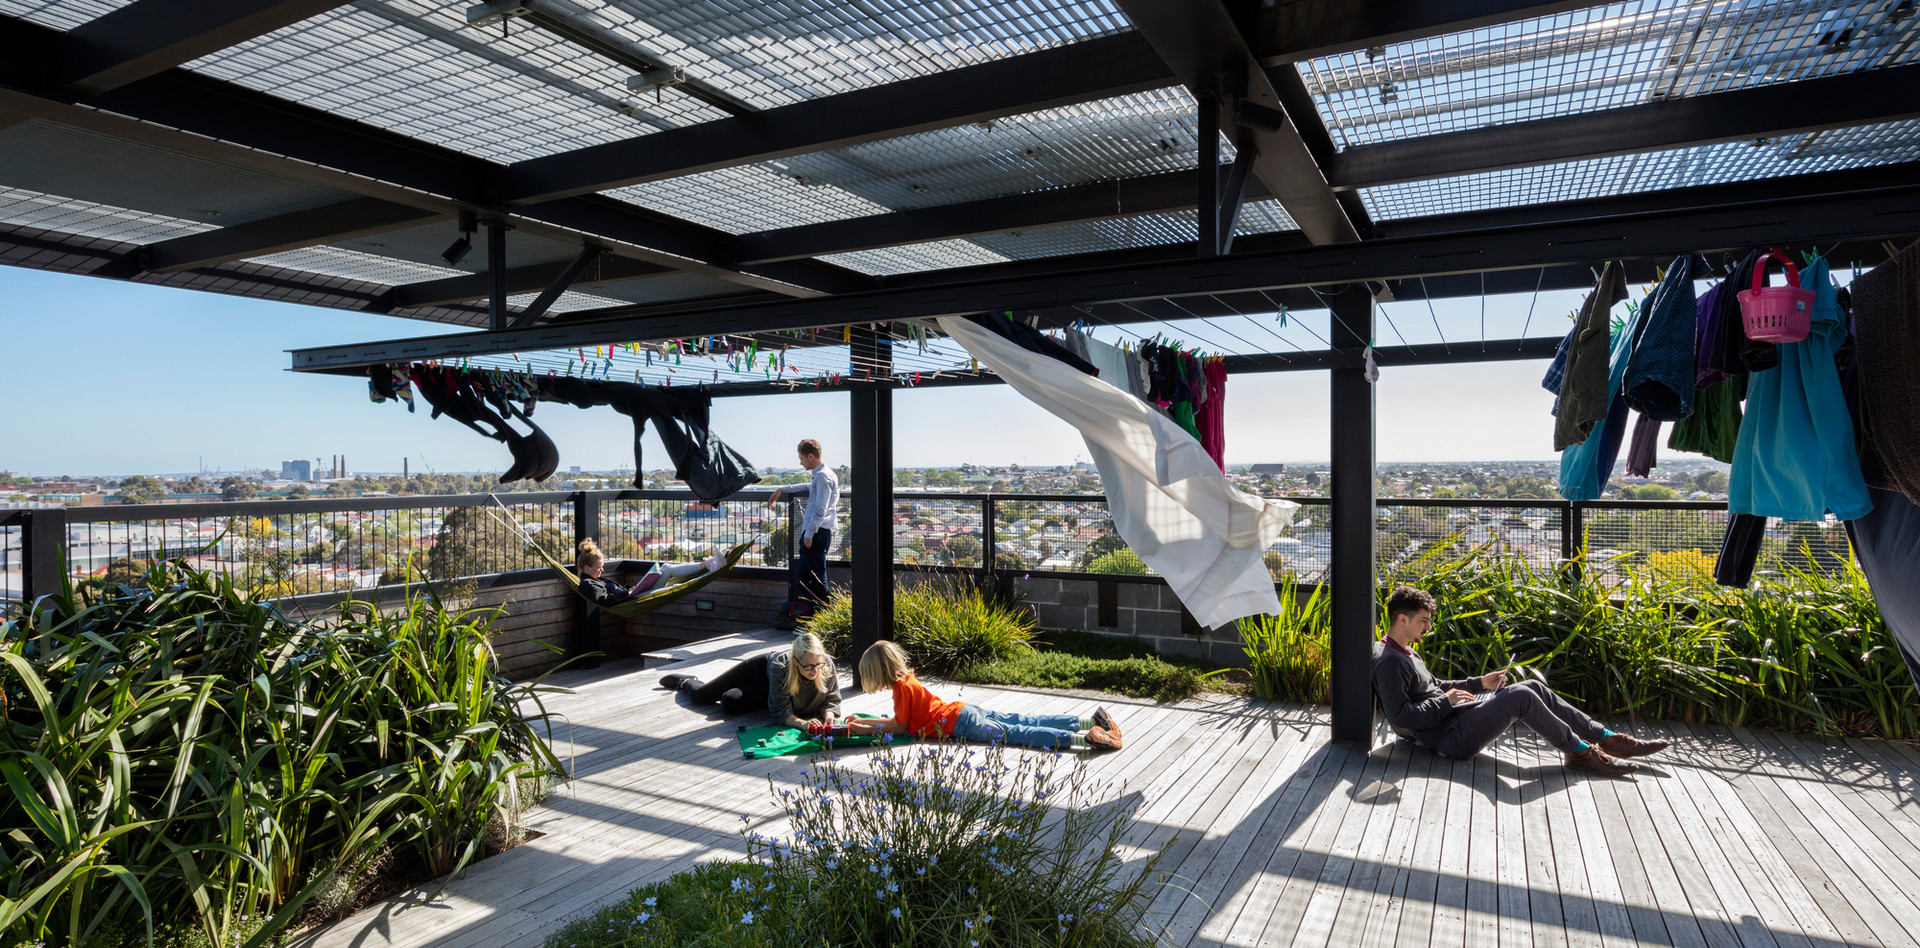 The shared rooftop space in The Commons features a solar array, productive garden, landscaping, communal laundry and hanging spaces. The Commons rooftop, image credit: Dianna Snape